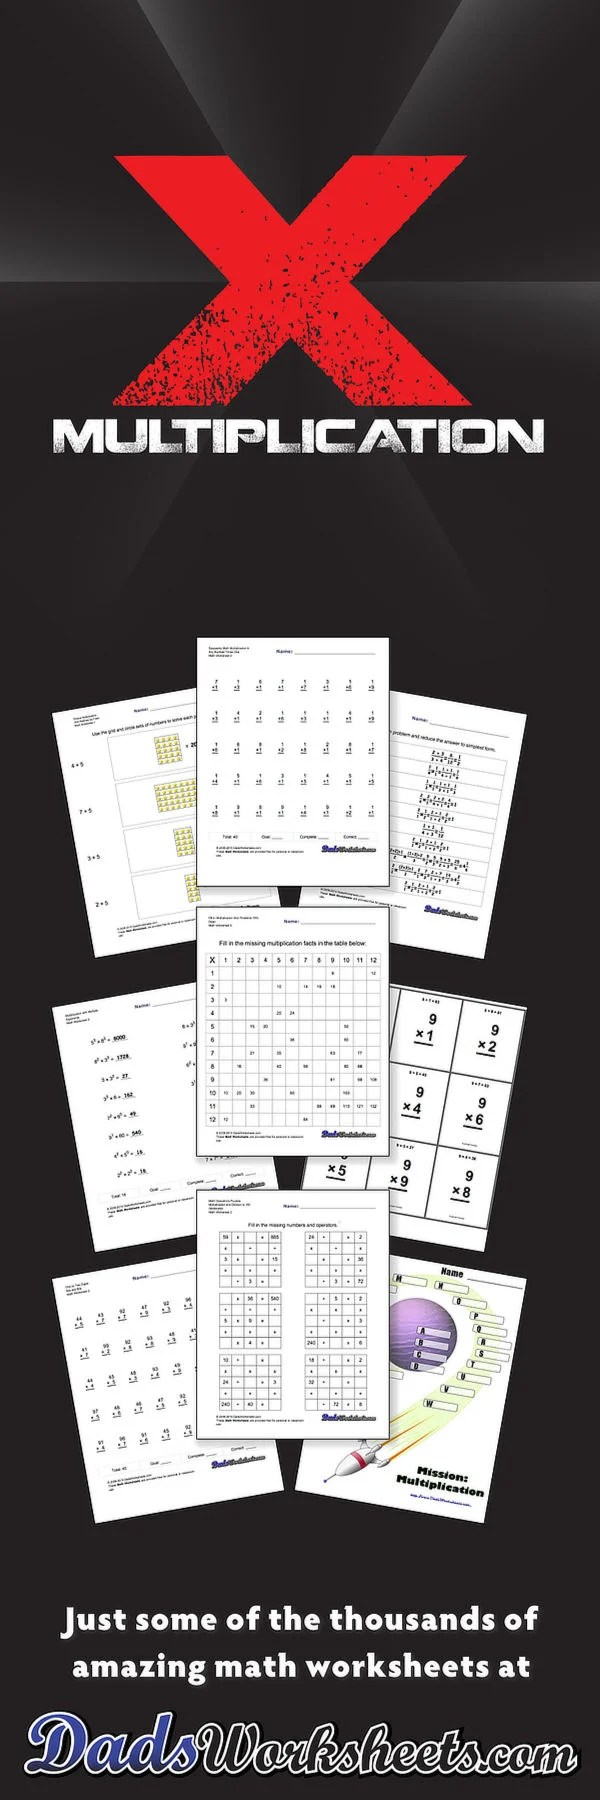 medium resolution of Multiplication Worksheets